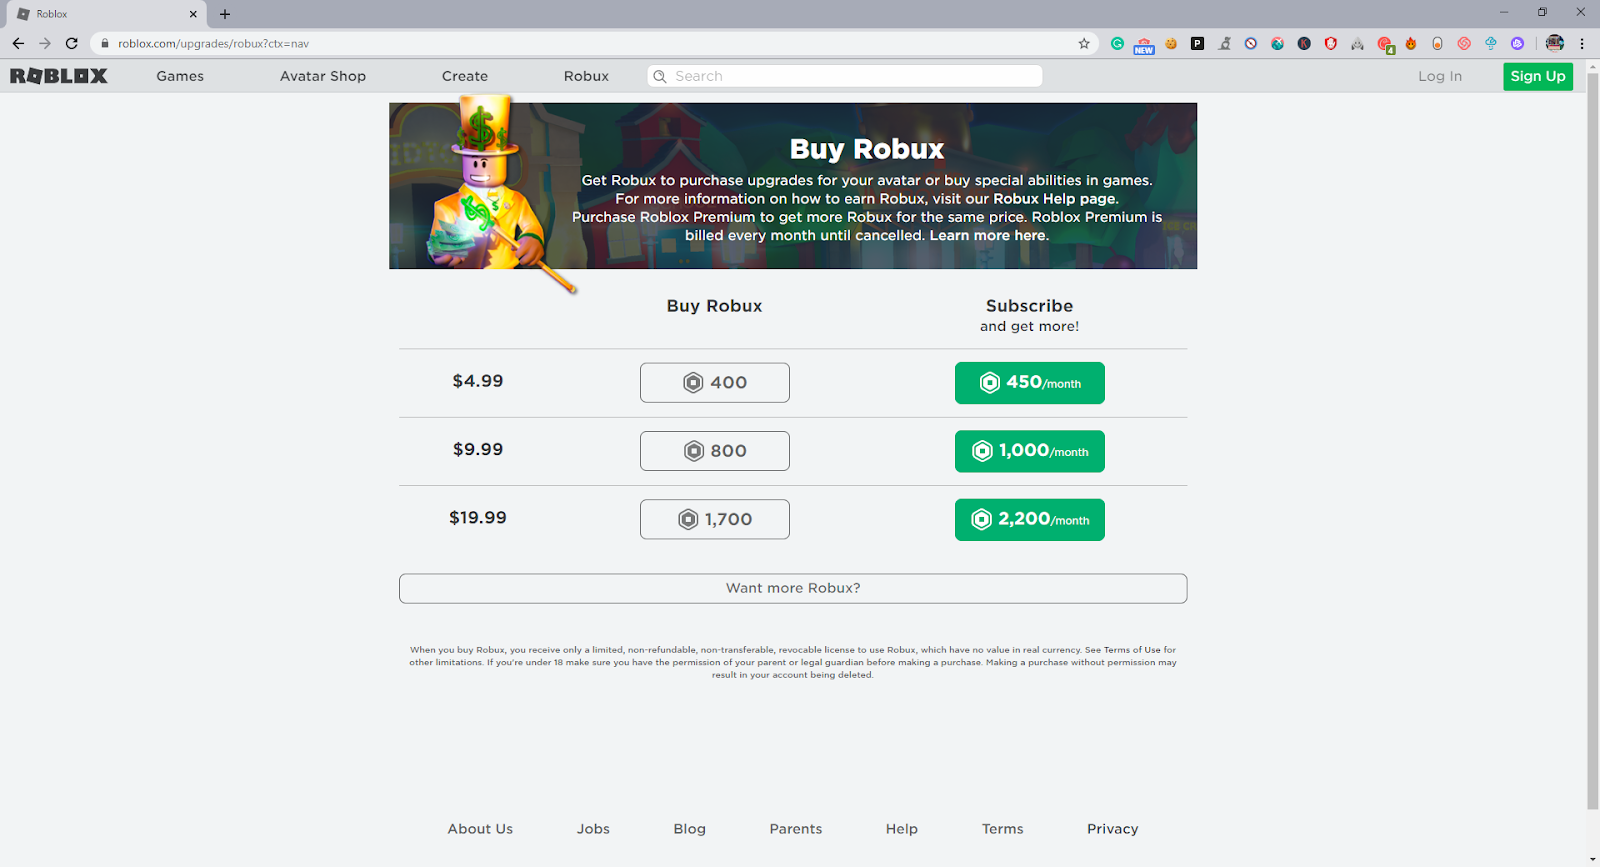 How To Make Profit On Roblox Through Games How To Get Free Robux Using Generator In August 2020